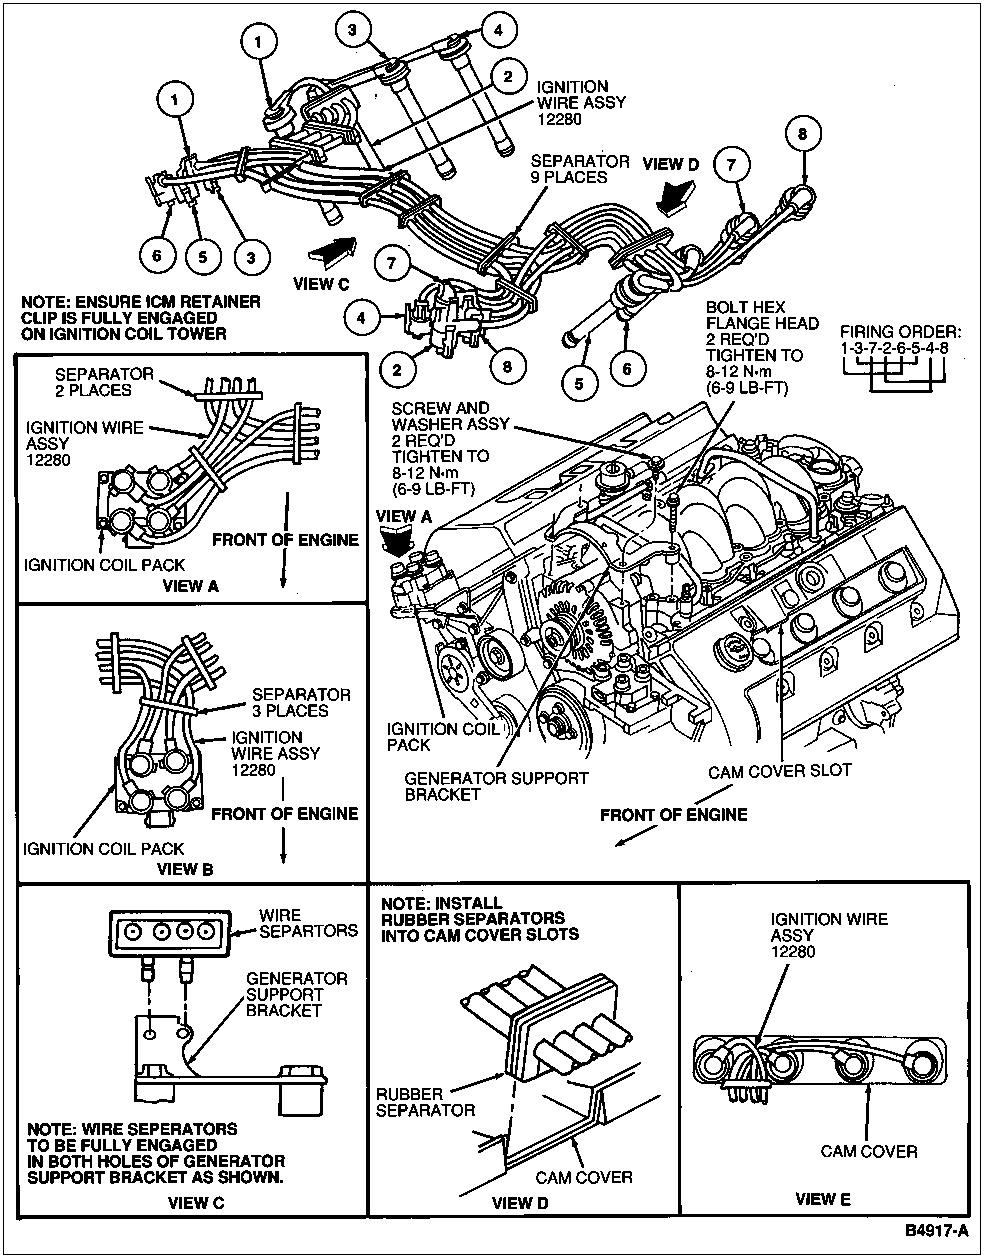 1992 cadillac brougham engine  1992  free engine image for